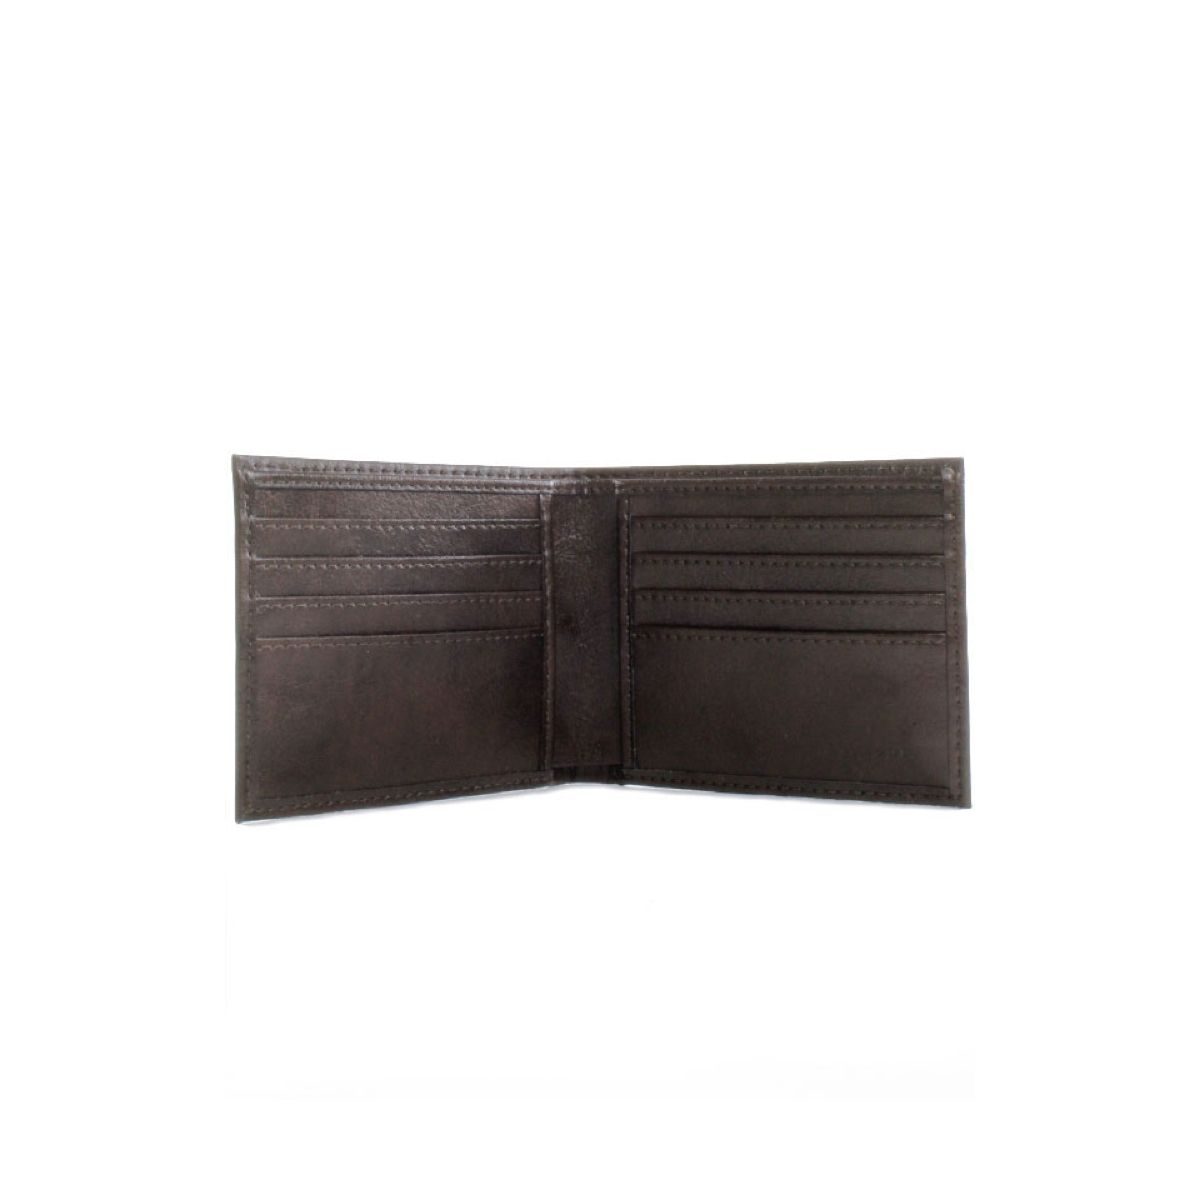 Will's Vegan Billfold Wallet